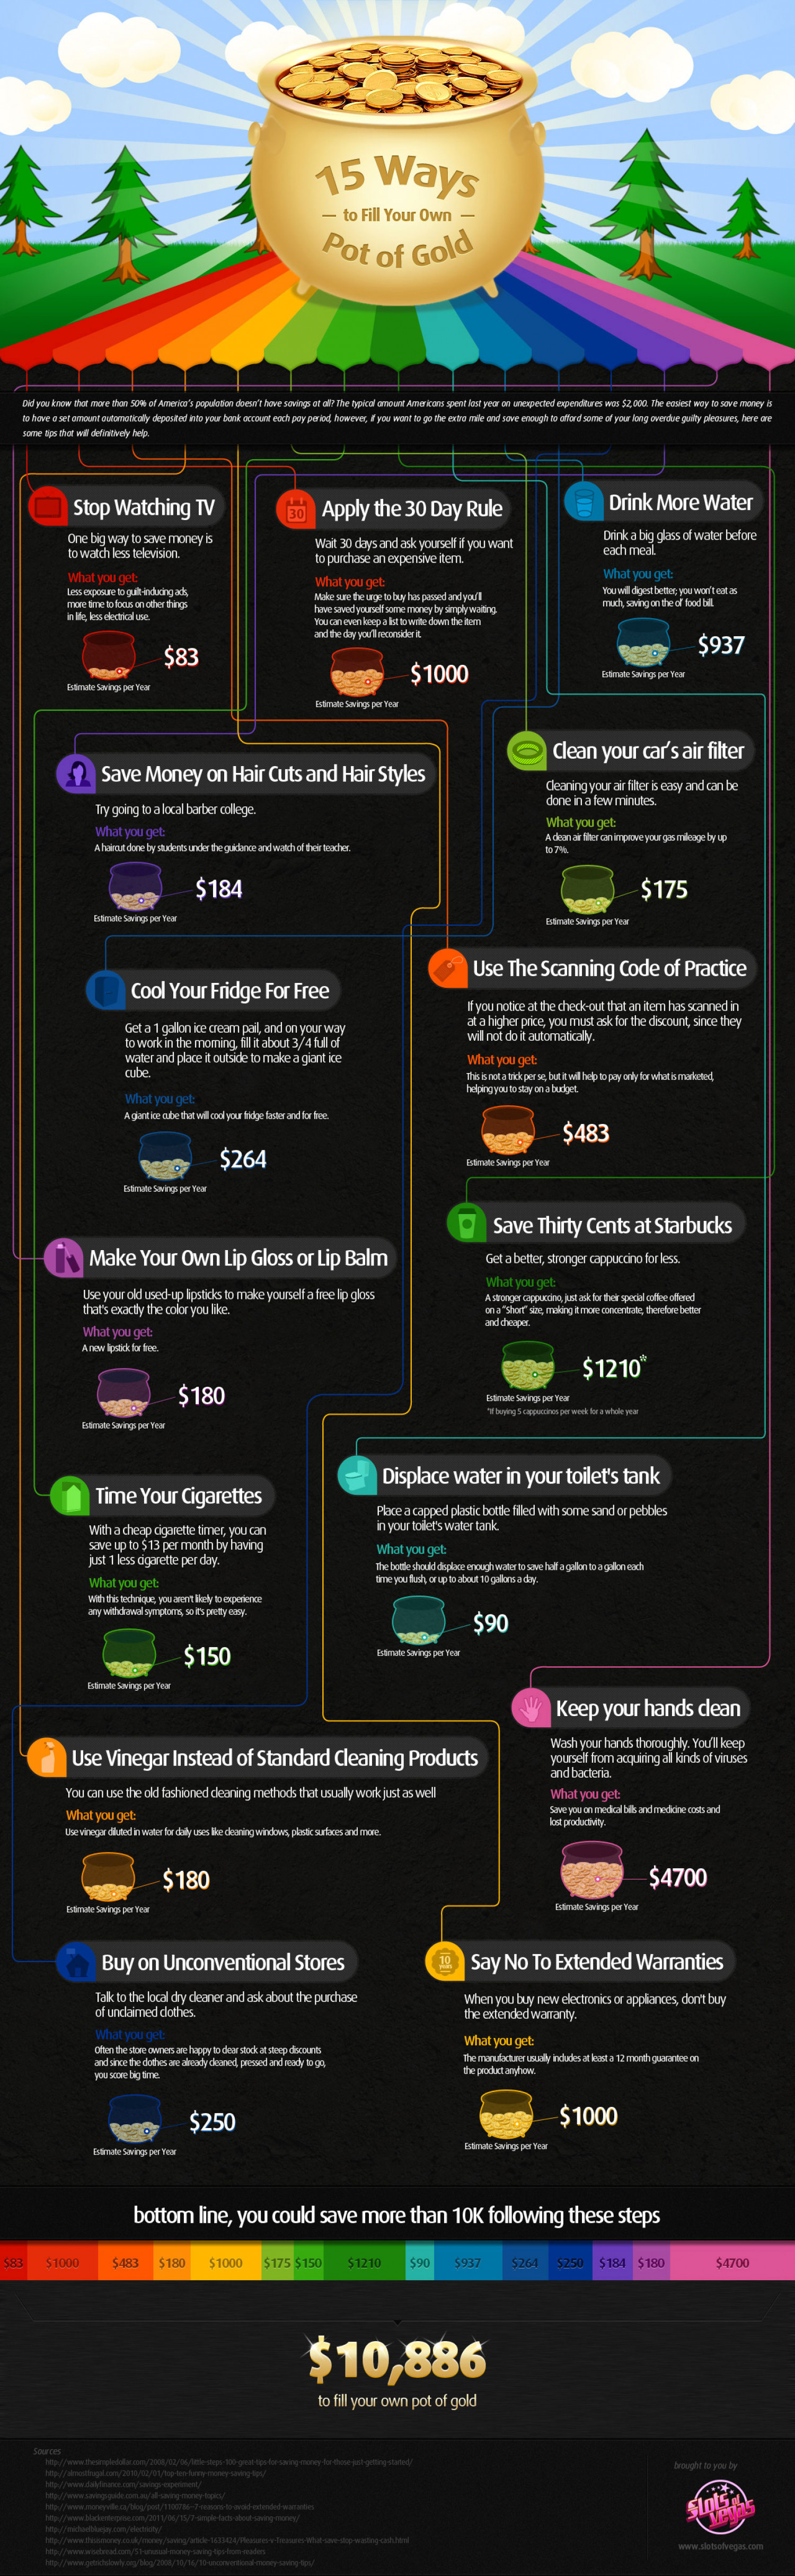 15 Ways to Fill Your Own Pot of Gold Infographic